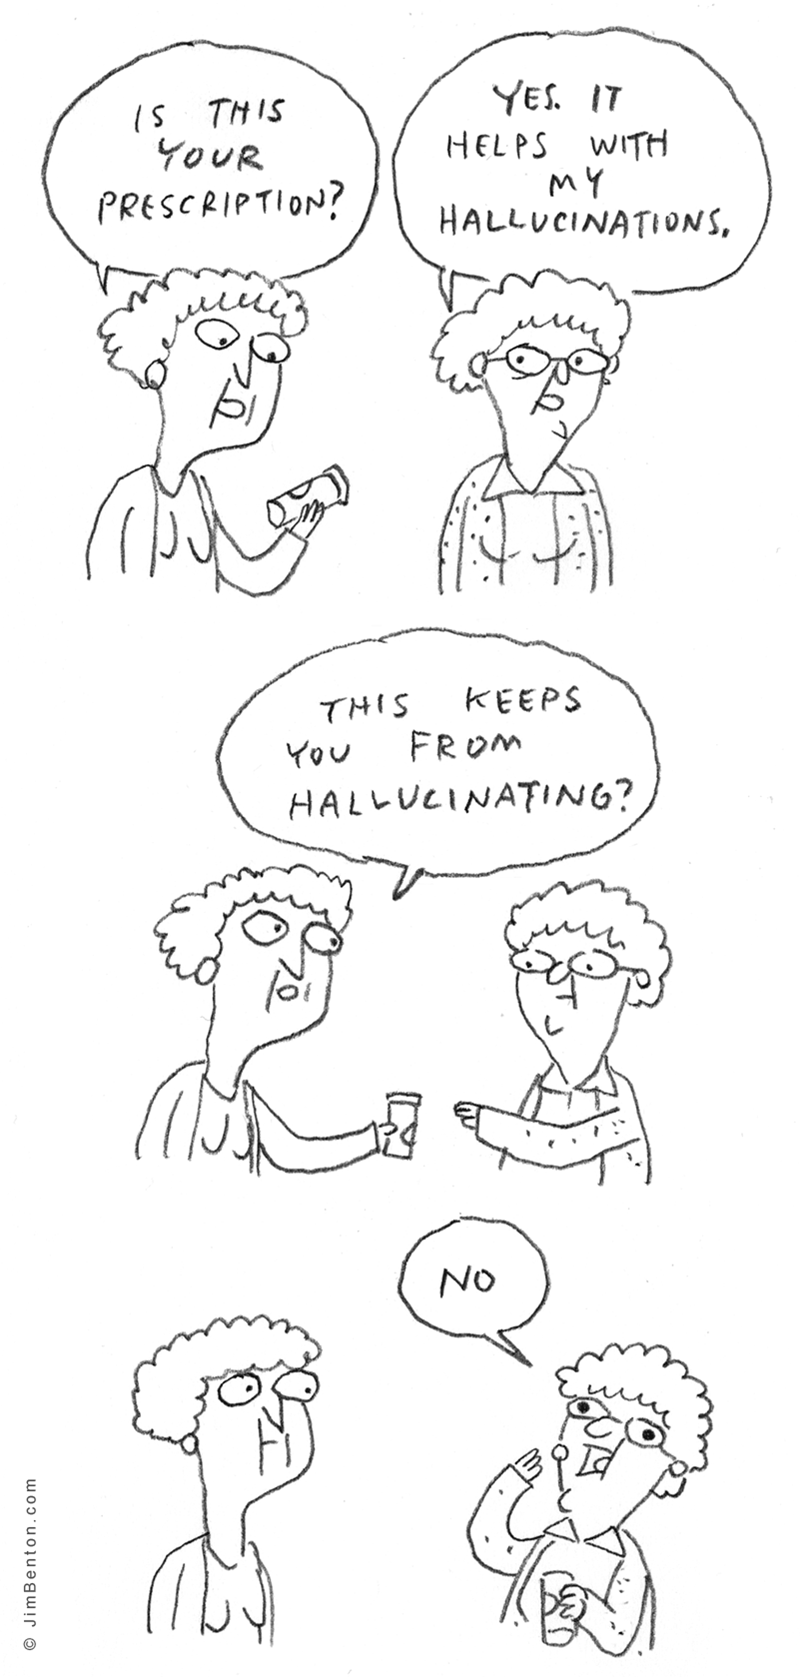 funny-doctor-hallucination-medication-web-comics-twist